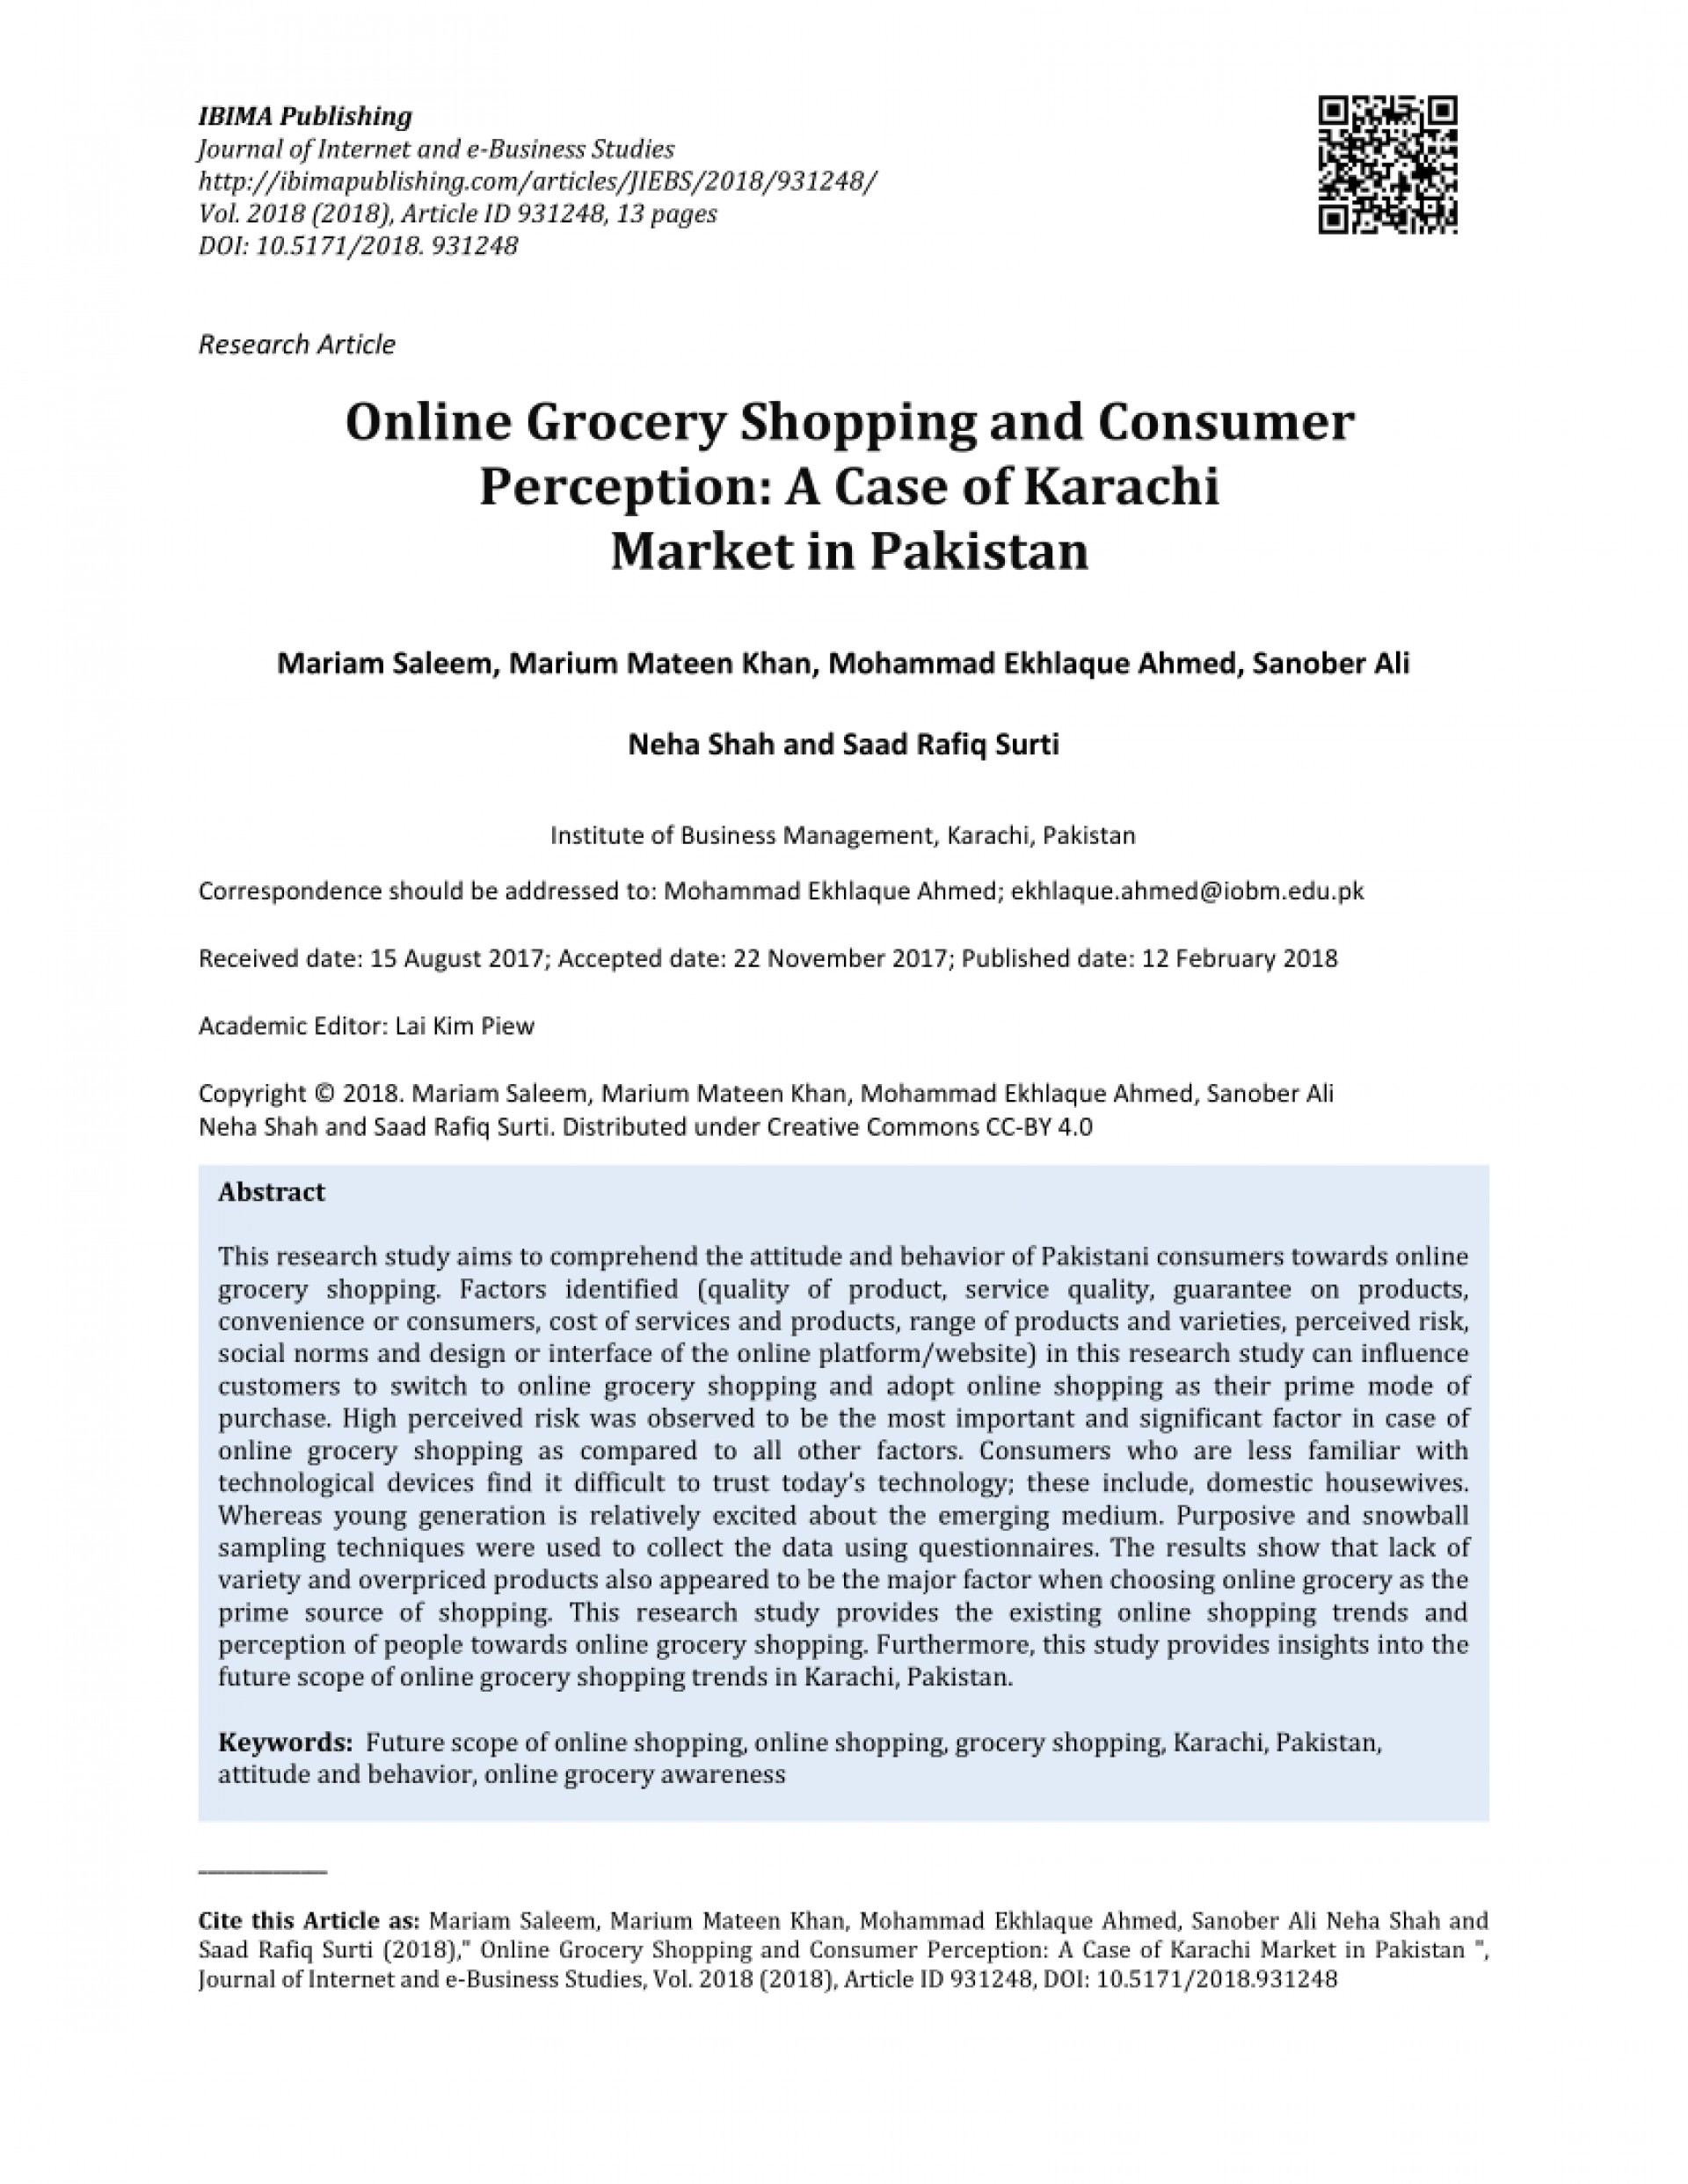 008 Research Paper Largepreview Online Shopping In Pakistan Unforgettable Papers 1920